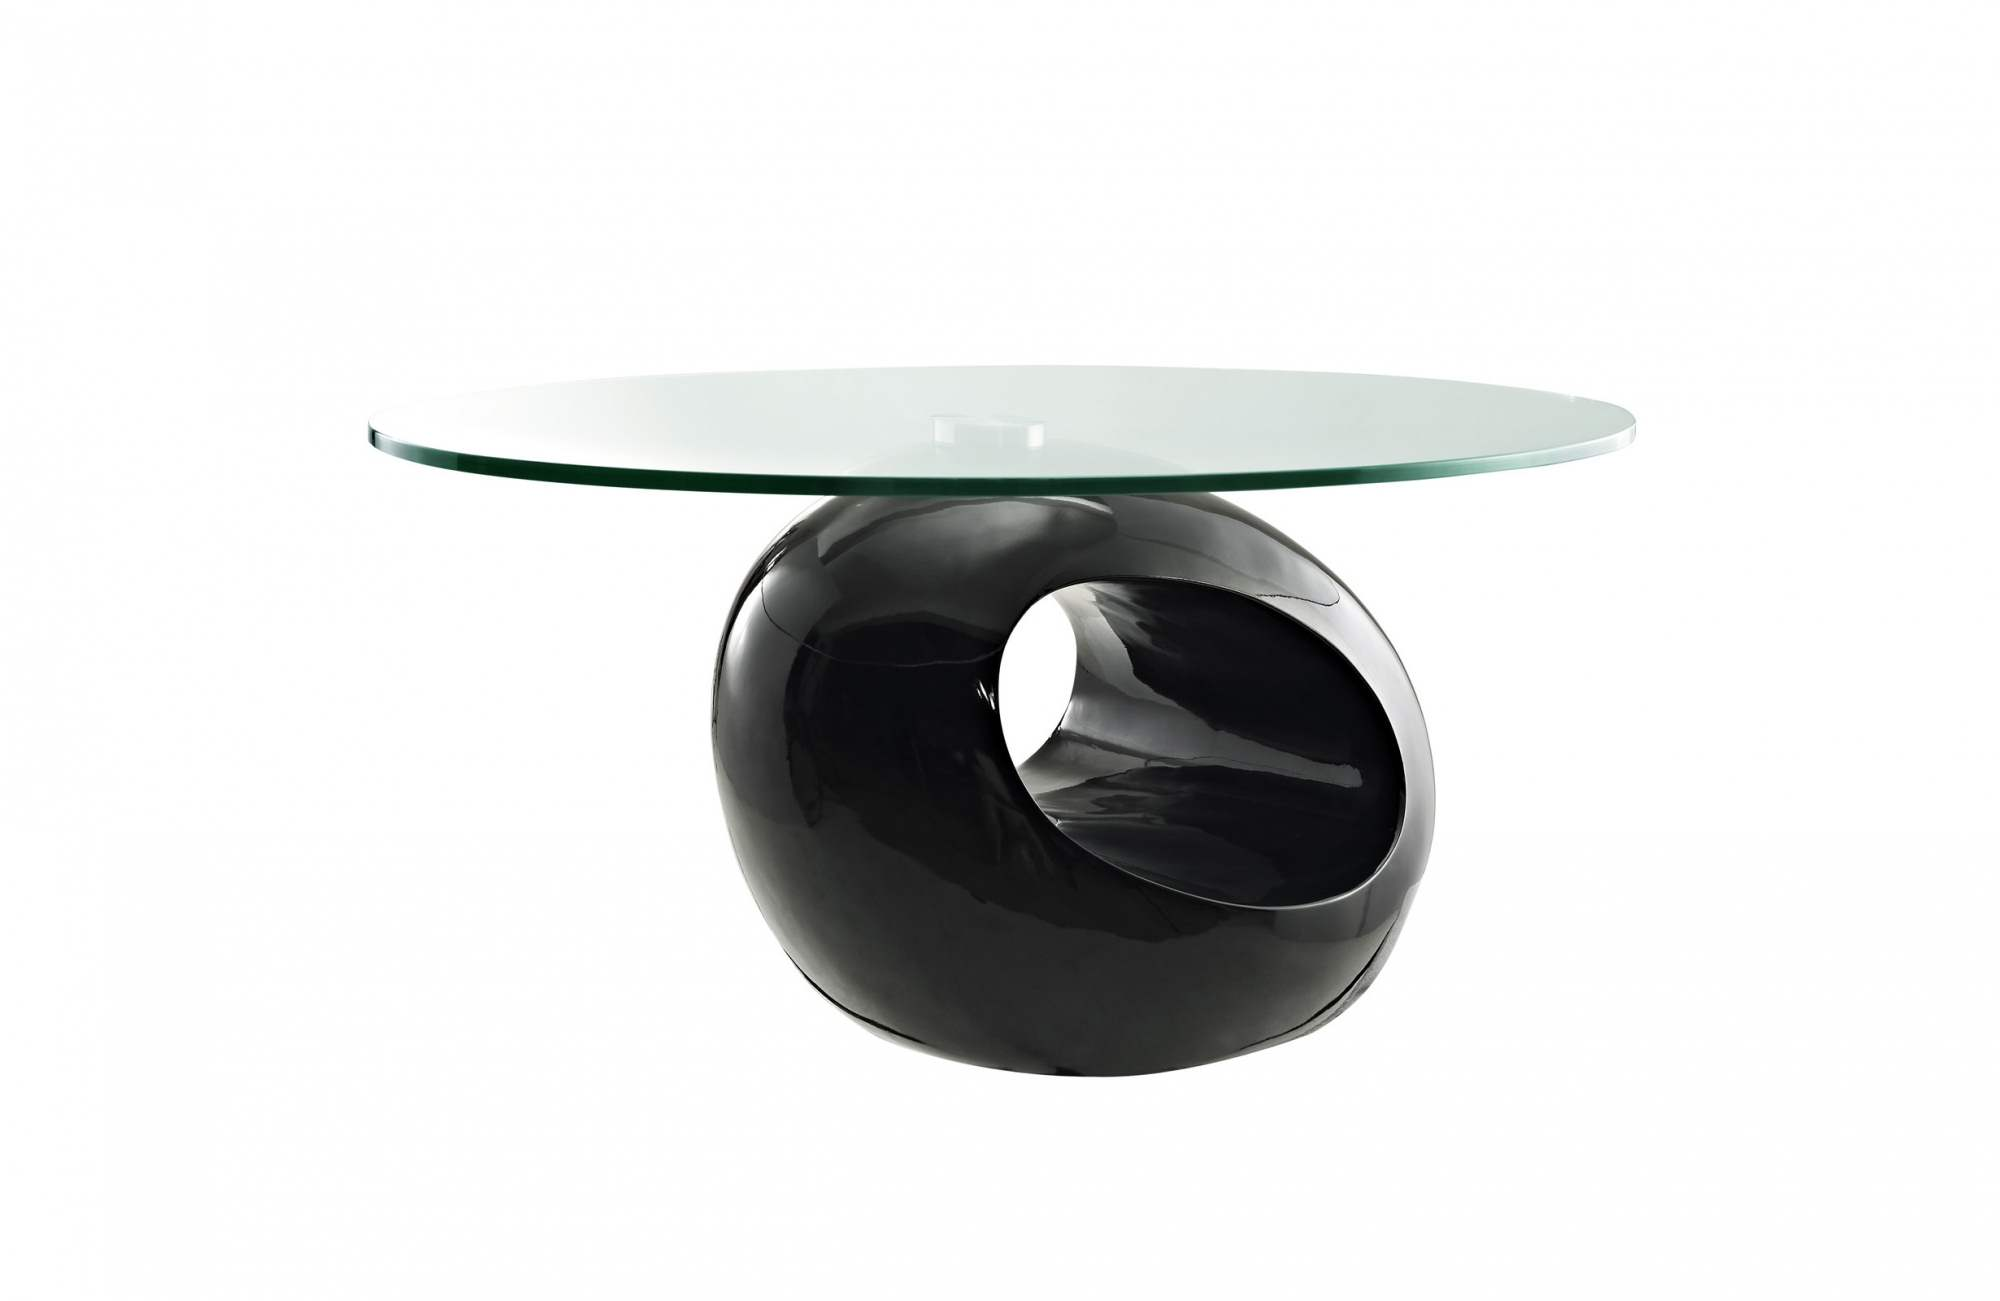 Deco in paris table basse design noir en verre maxus for Table basse design noir